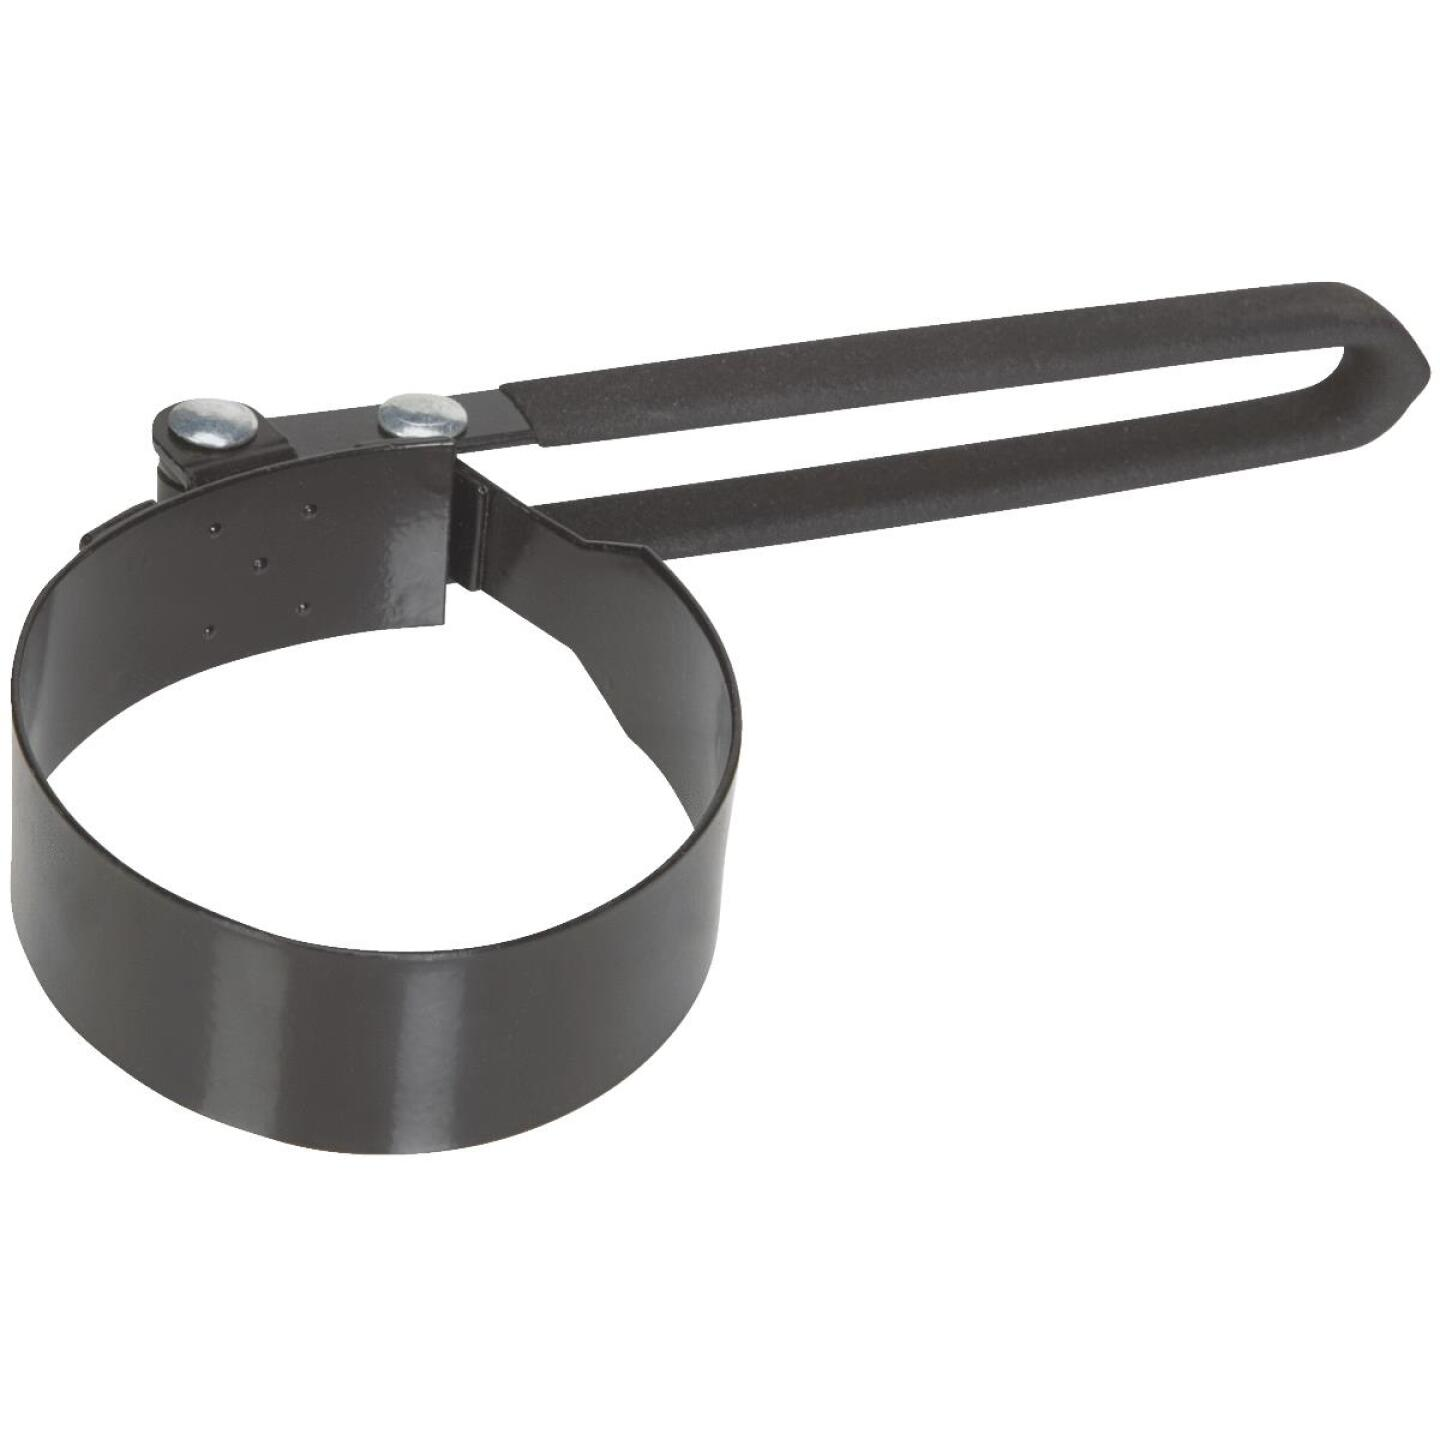 Plews Lubrimatic Steel Vinyl Coated Oil Filter Wrench Image 1